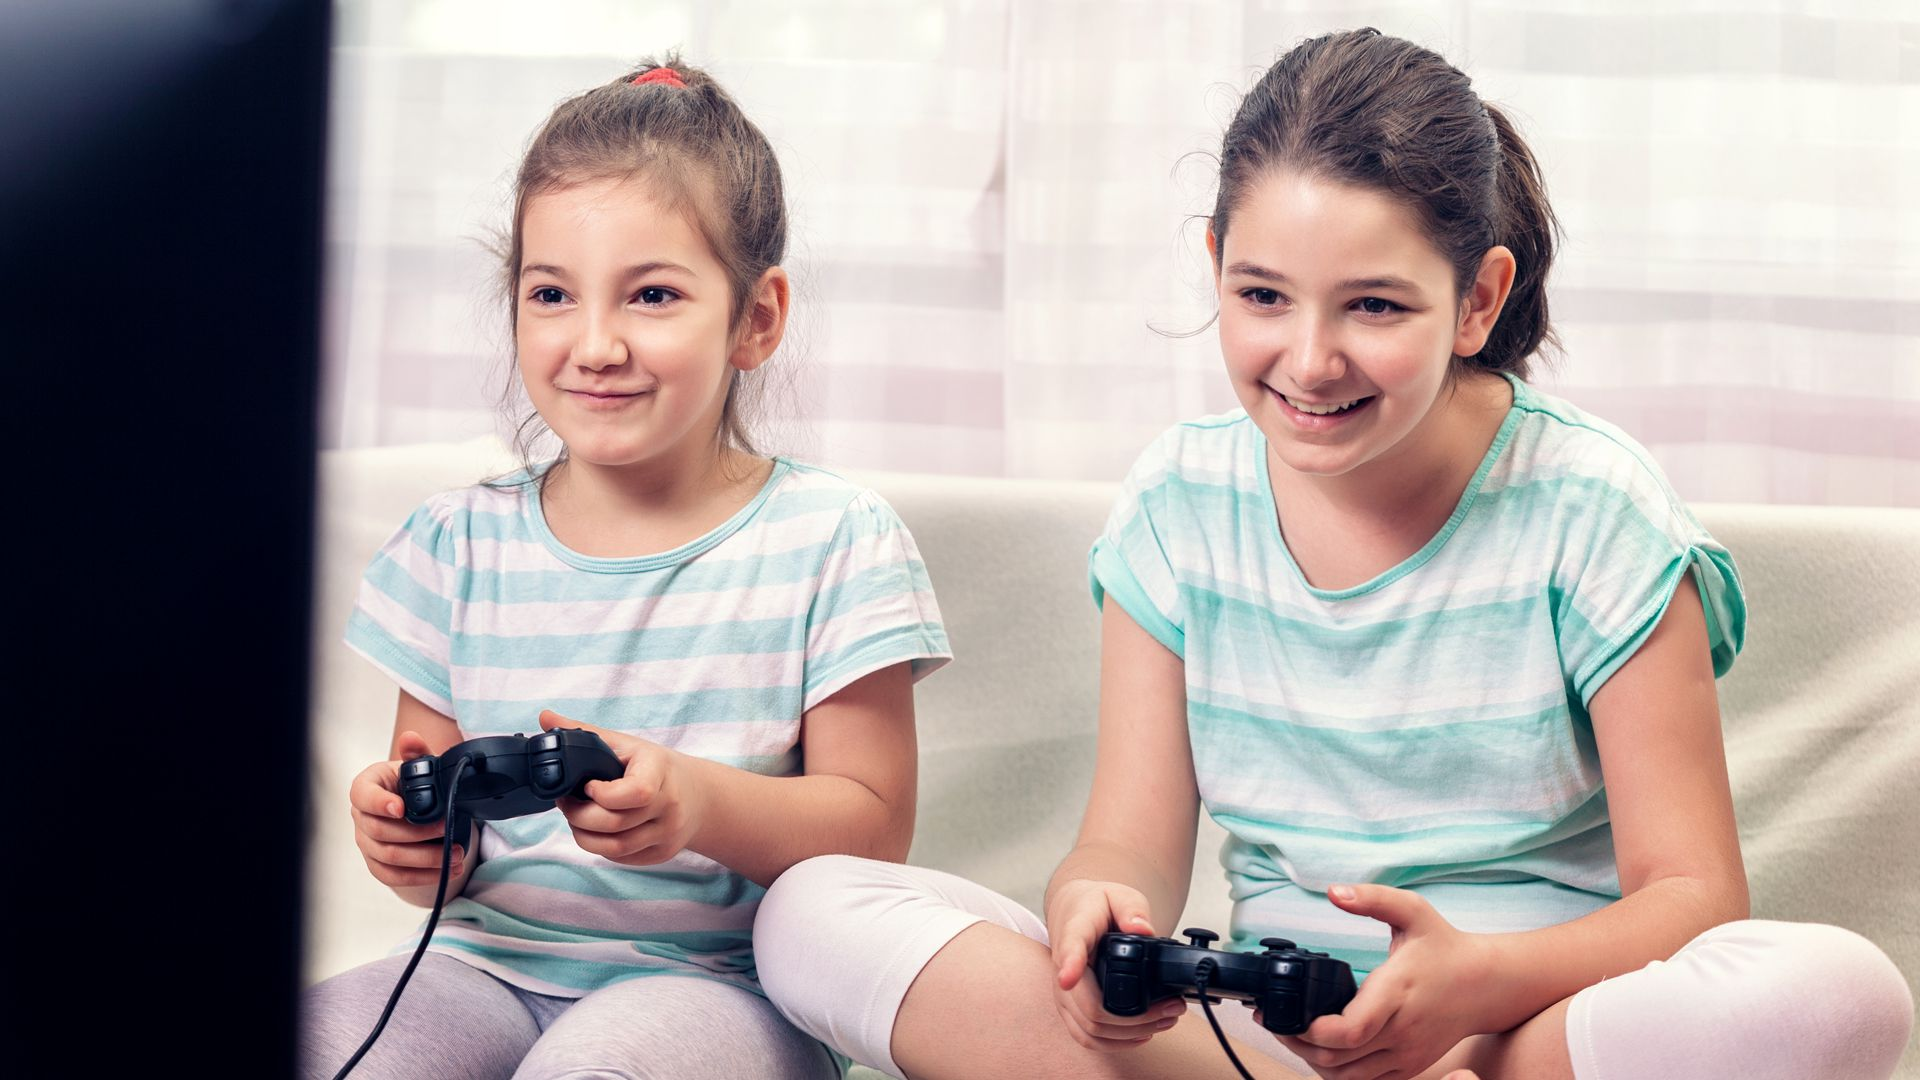 The 10 Best Fun Games For Girls In 2020